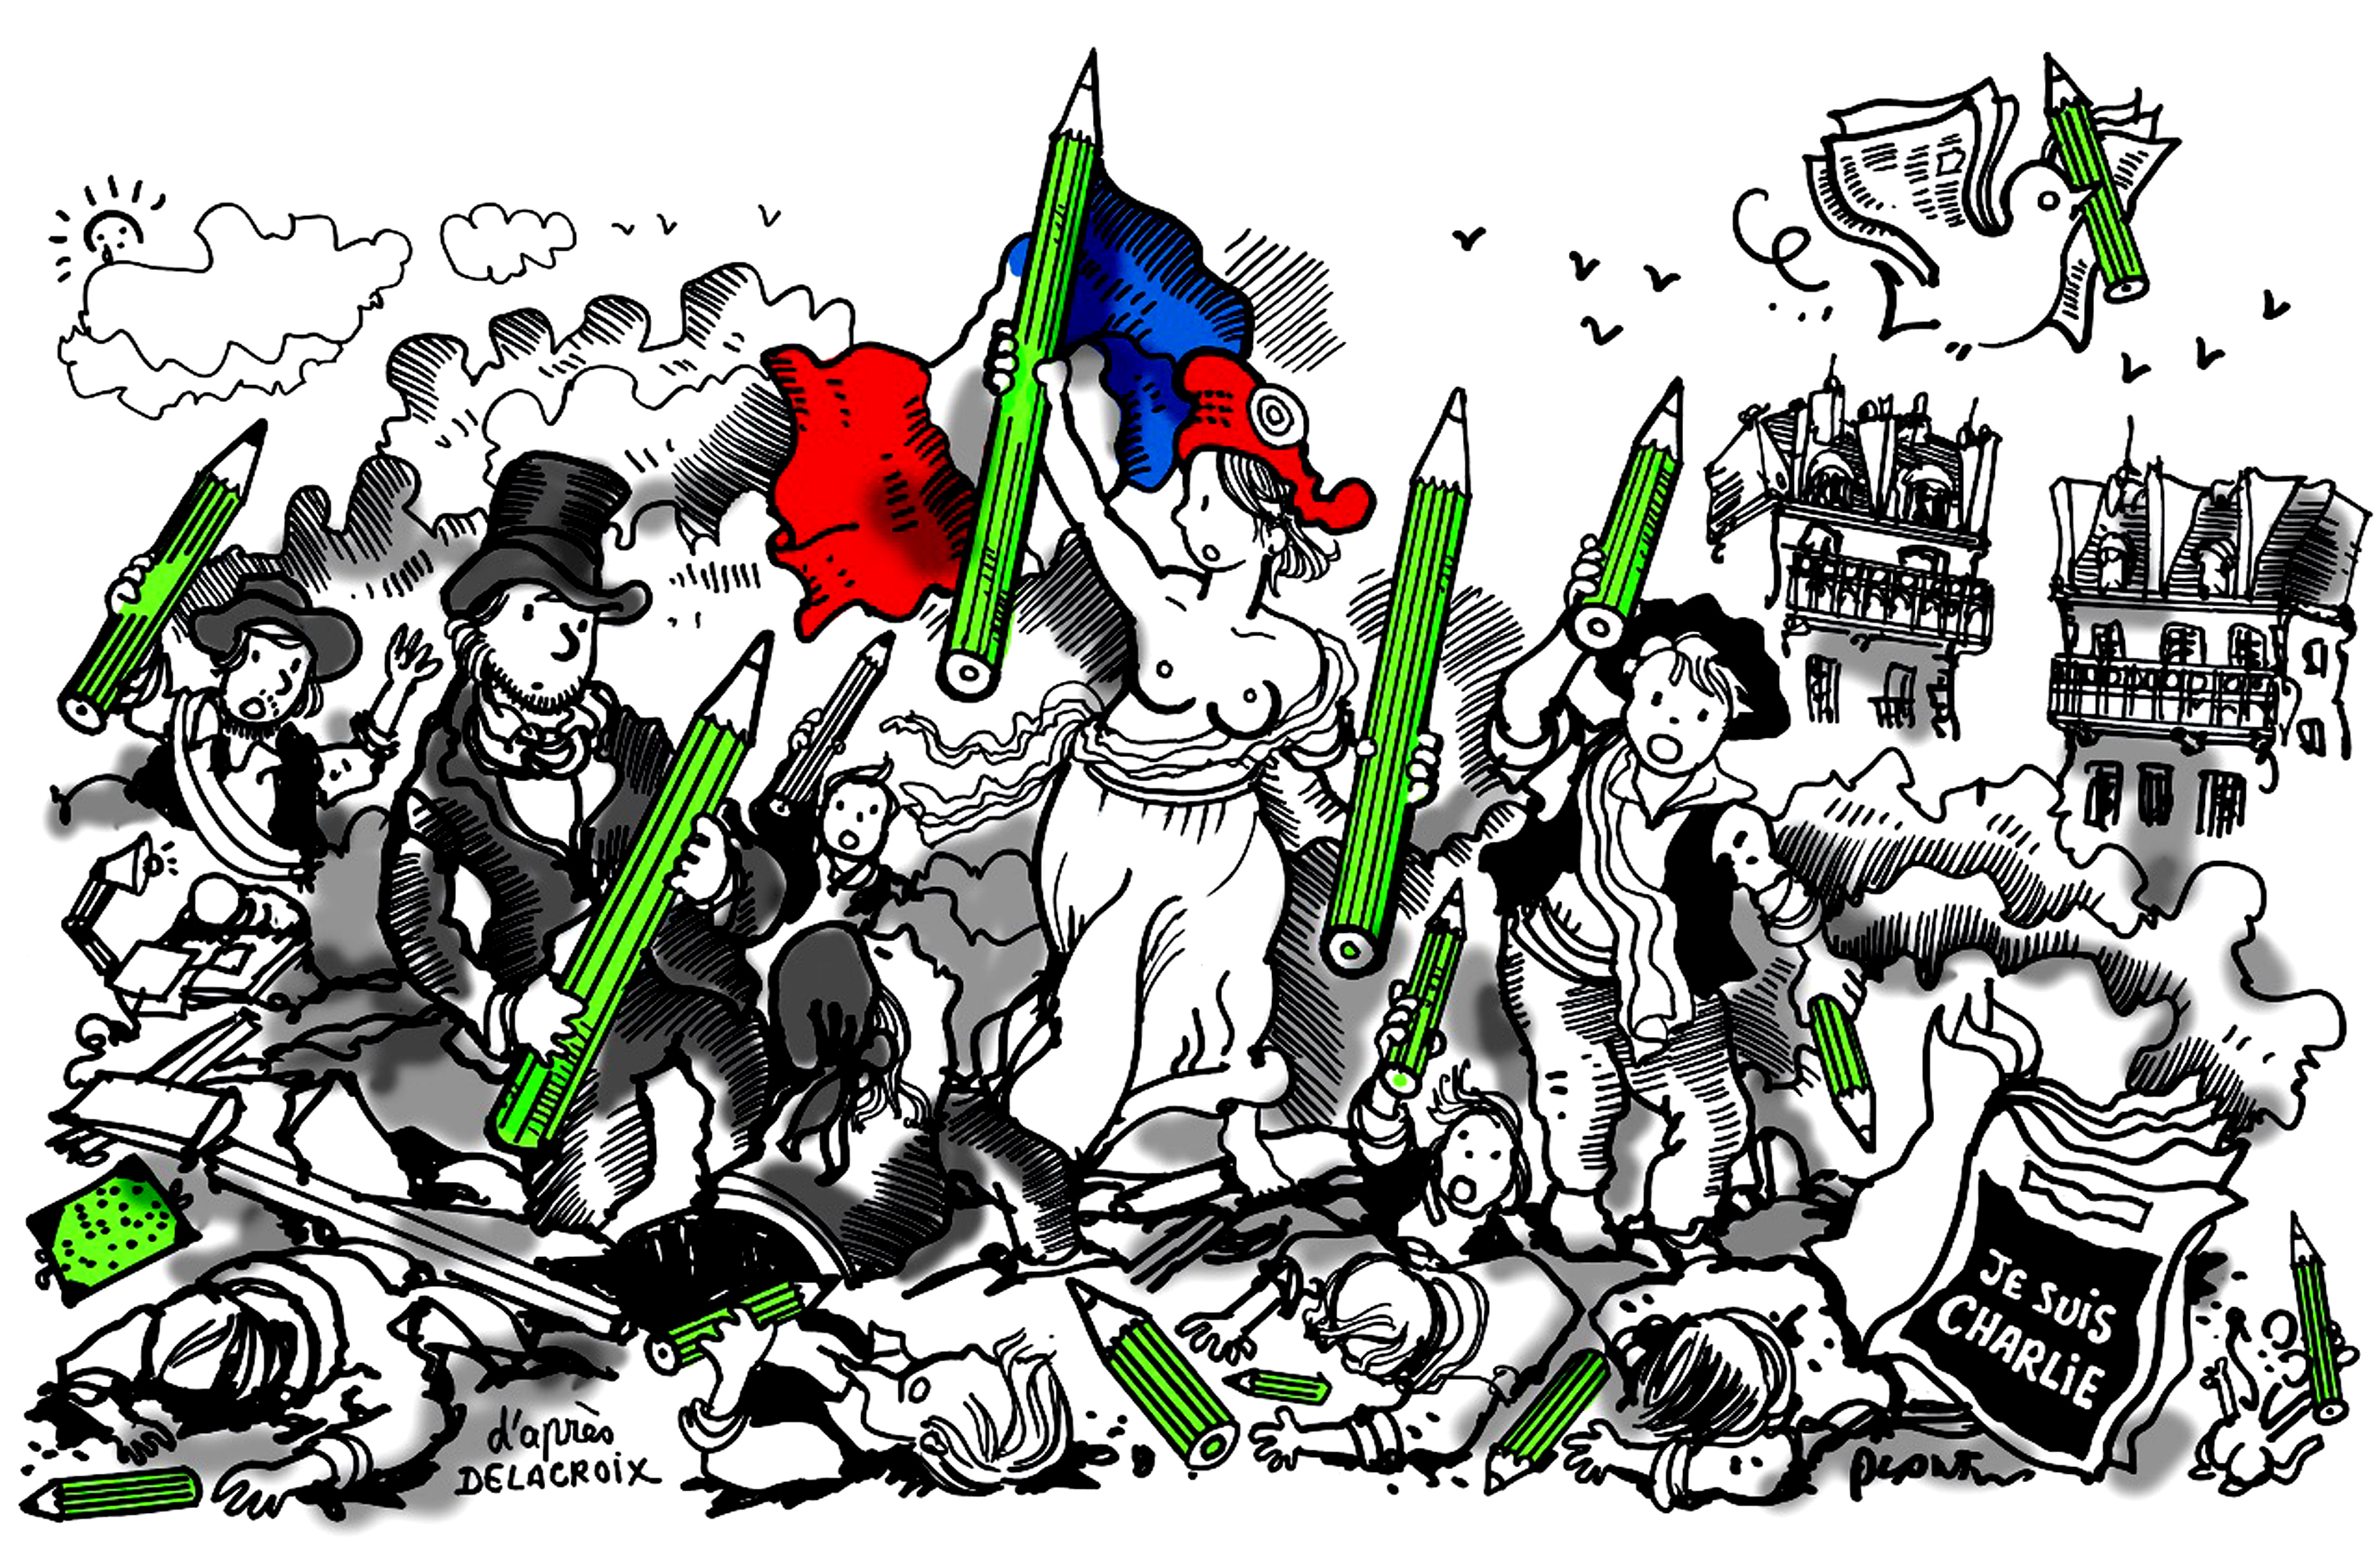 PLANTU-FRANCE-CARTOONING FOR PEACE